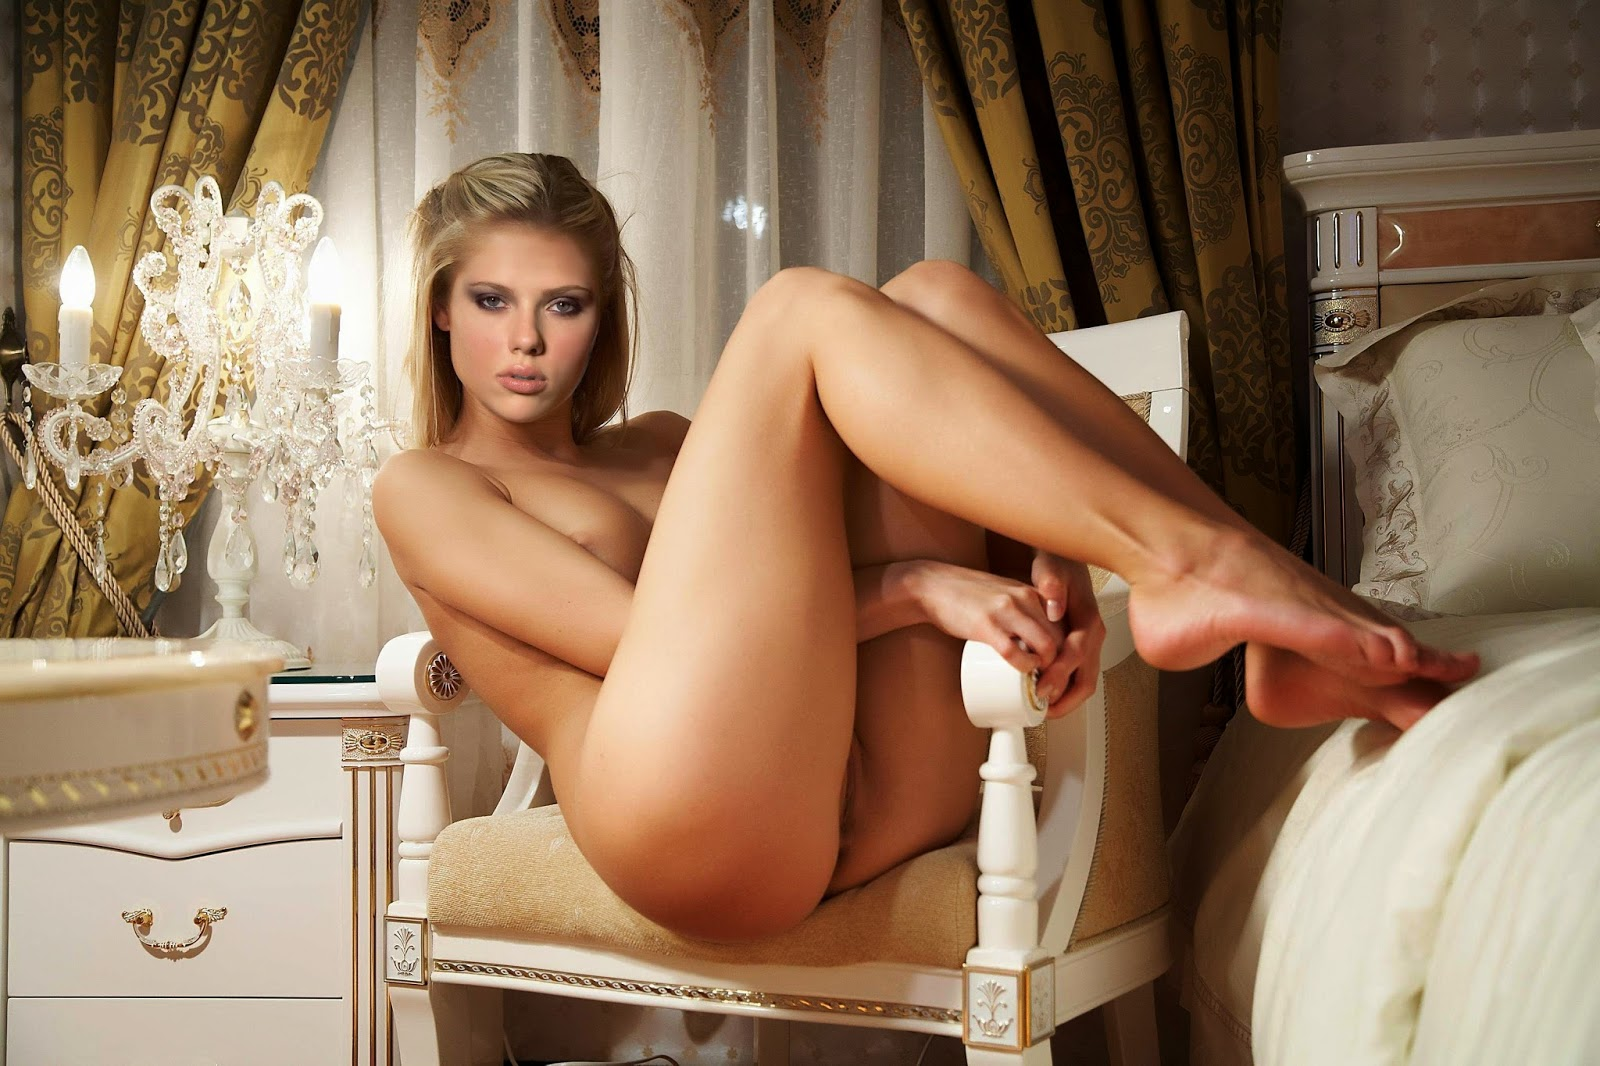 Adriana chechik in her early career 10